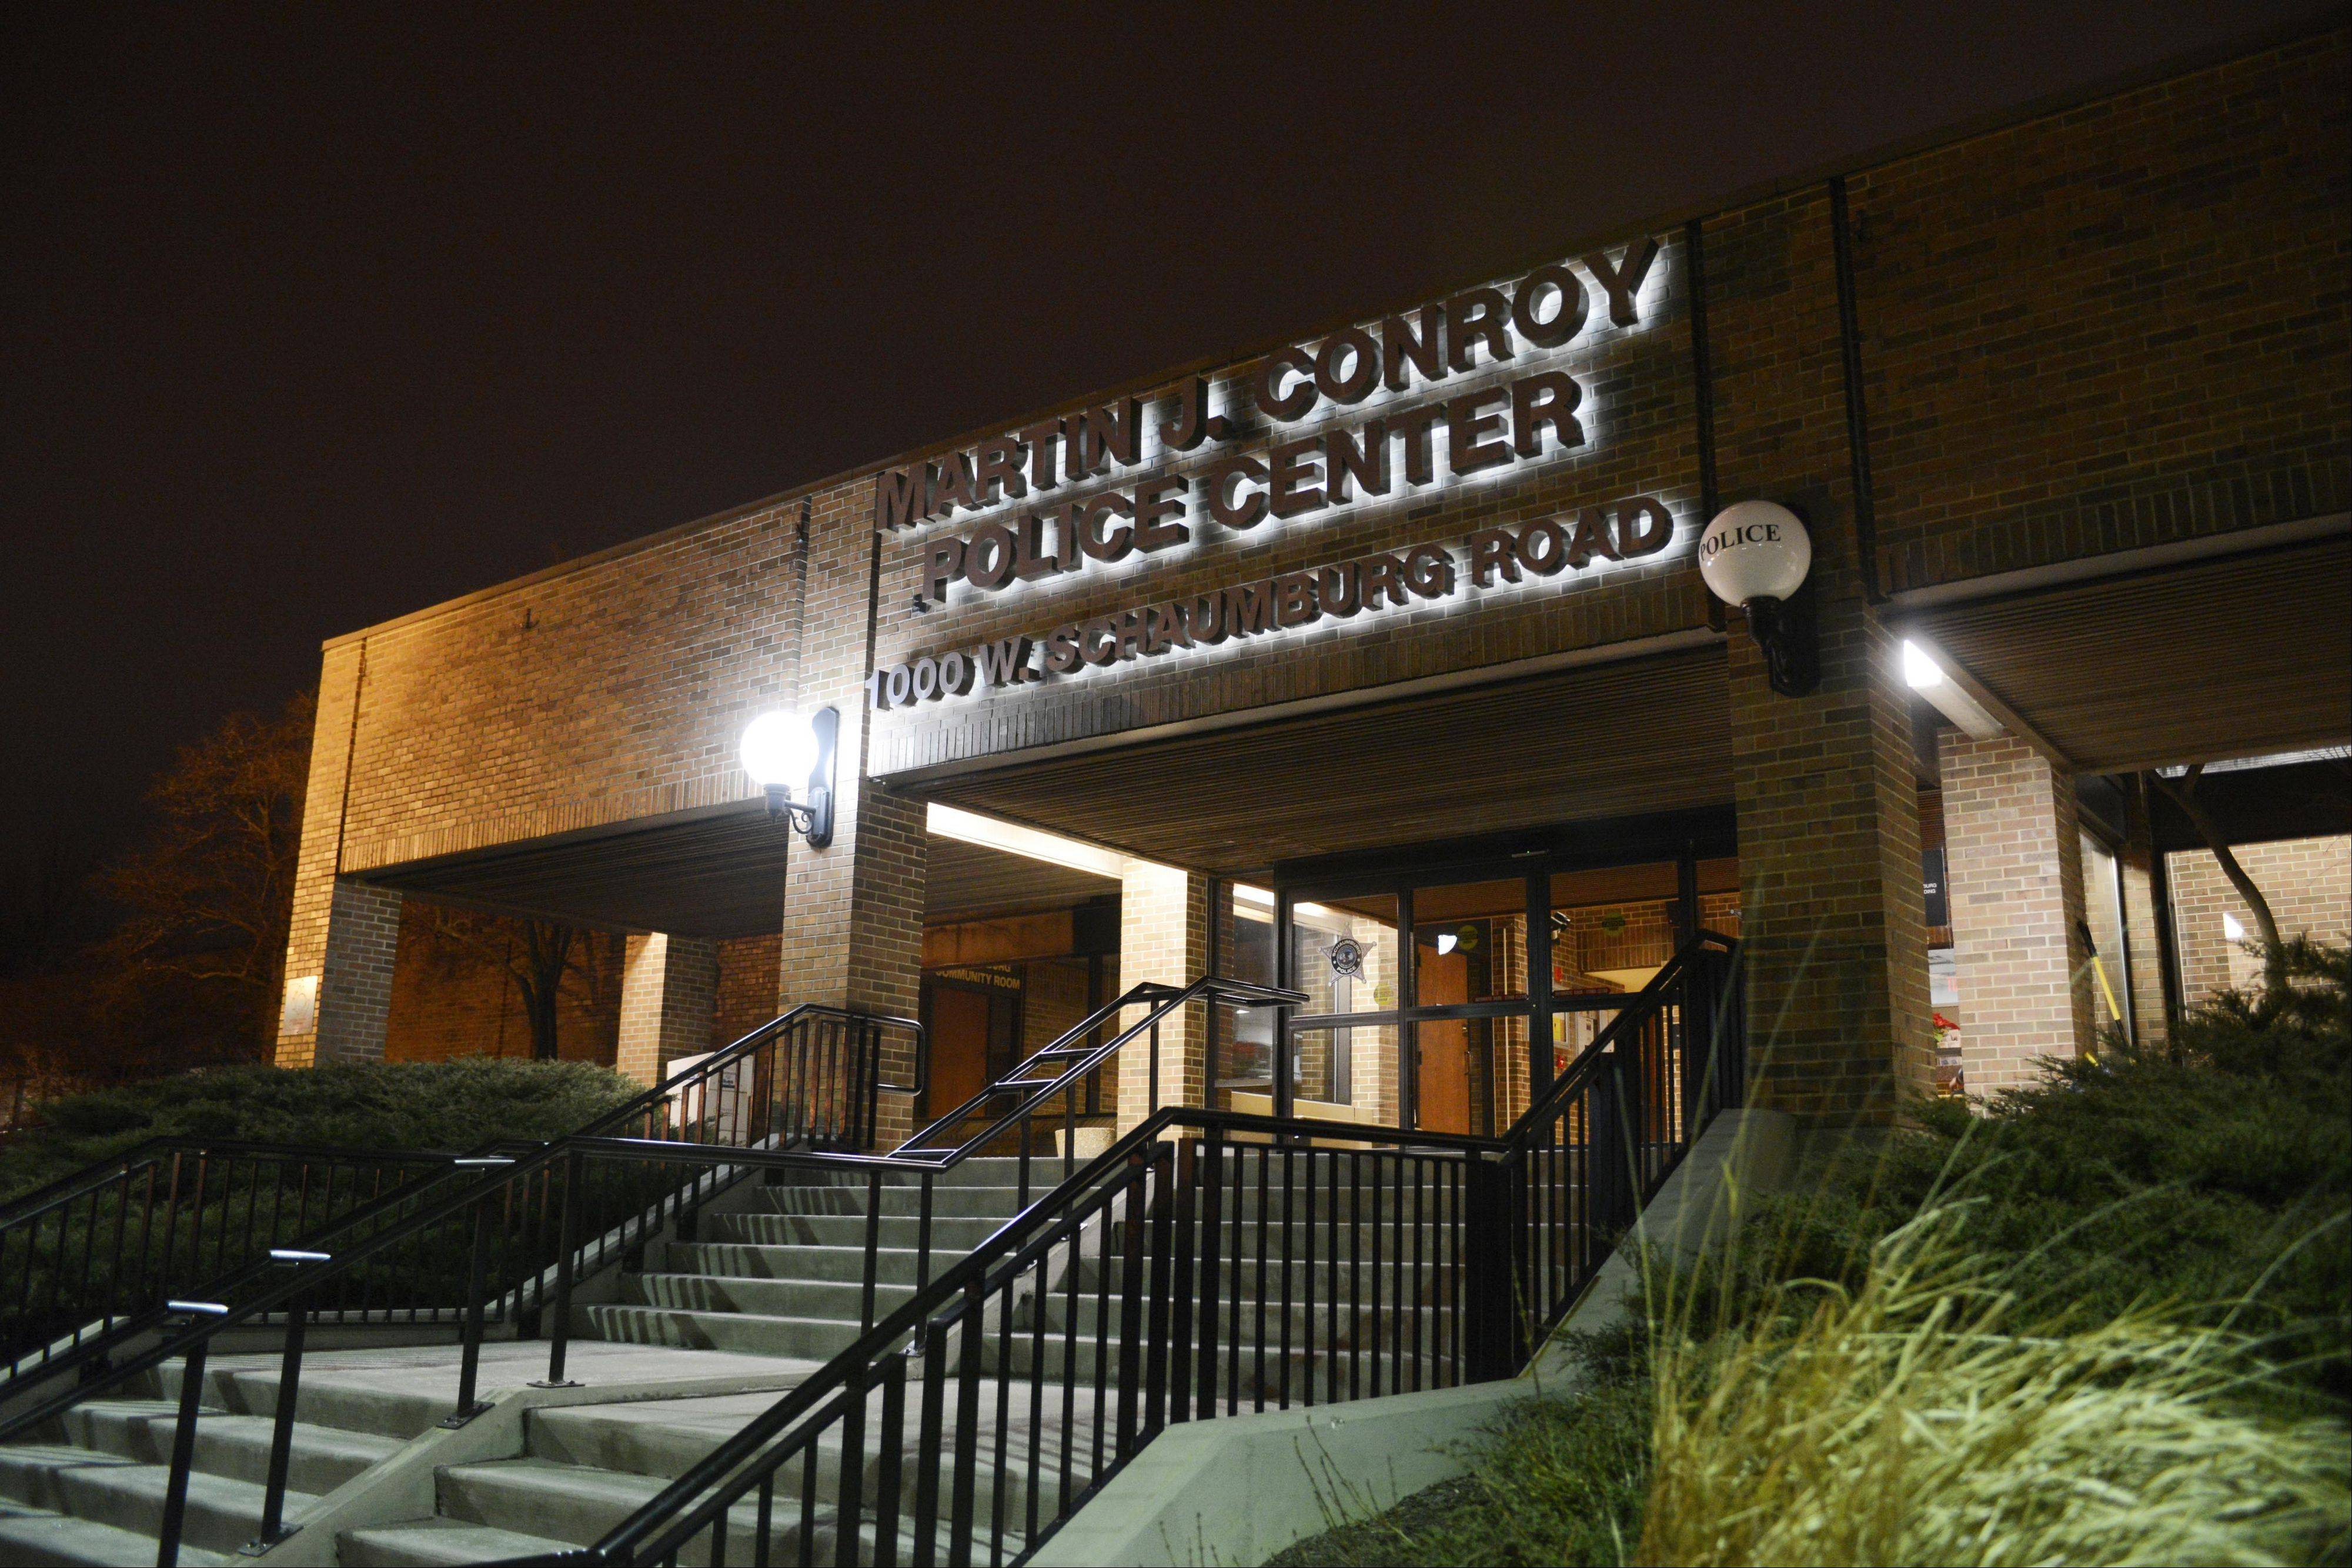 The arrest of three undercover Schaumburg police officers on drug conspiracy charges this m